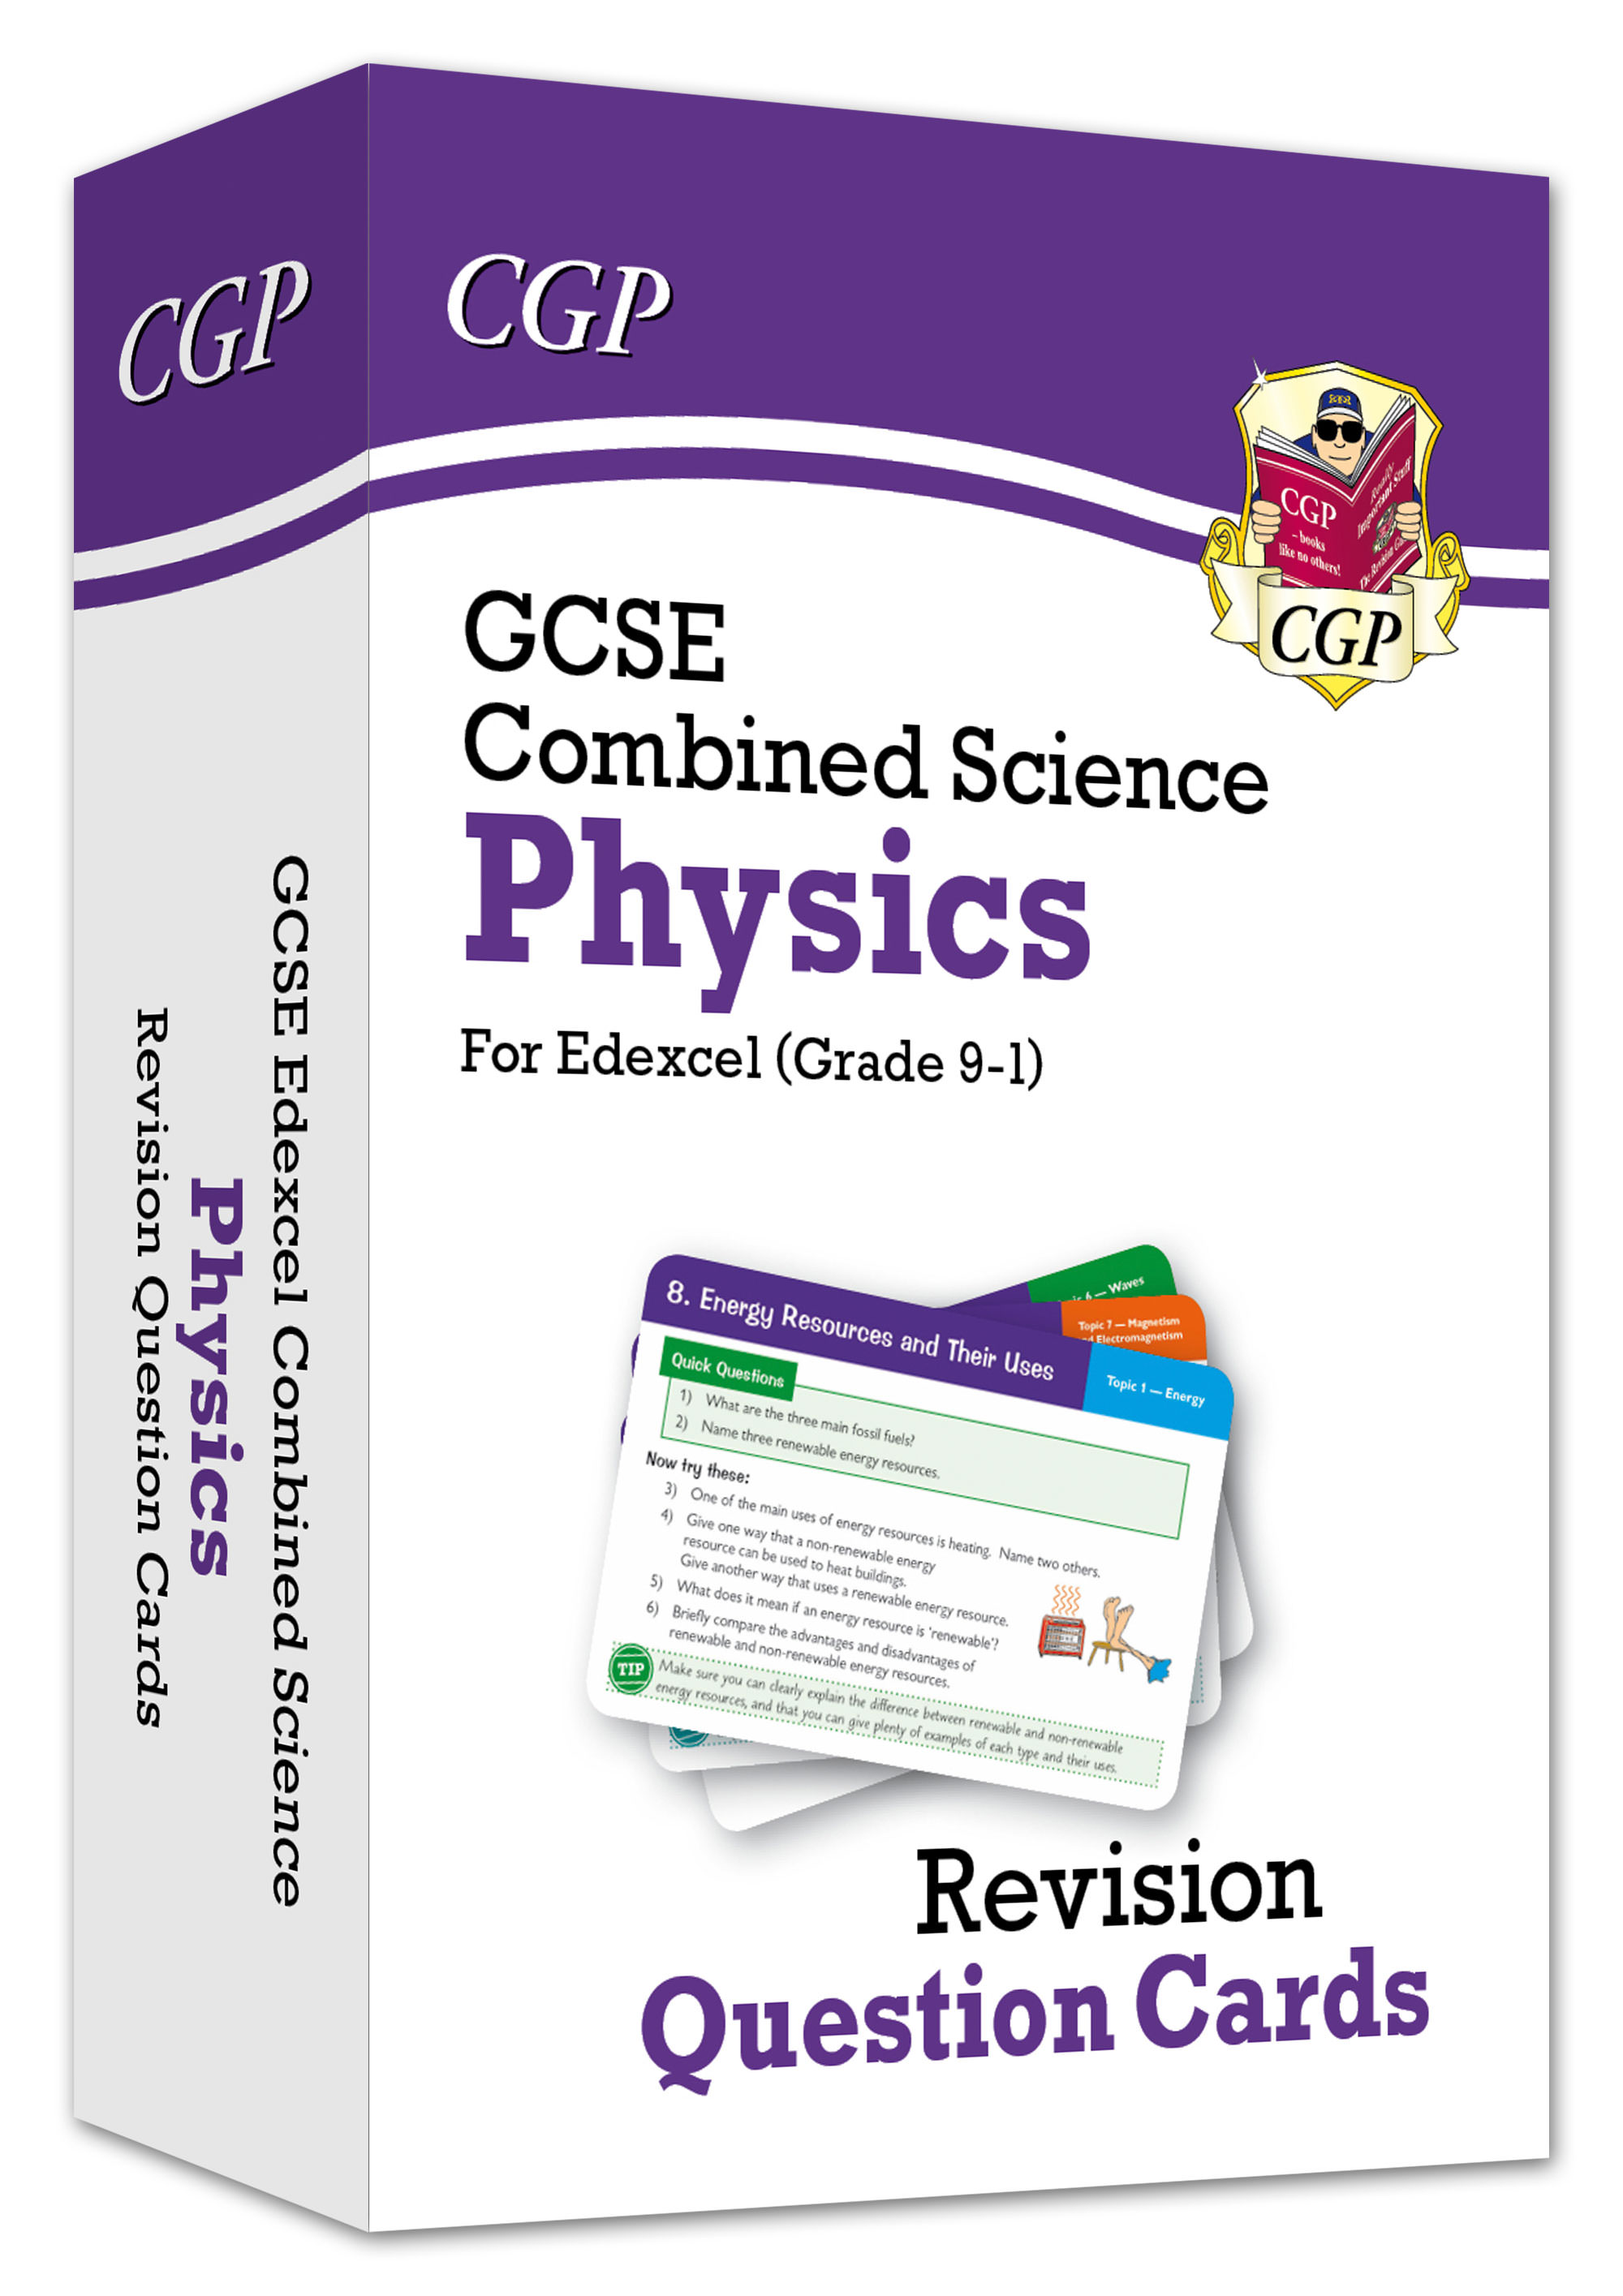 SCPEF41 - New 9-1 GCSE Combined Science: Physics Edexcel Revision Question Cards